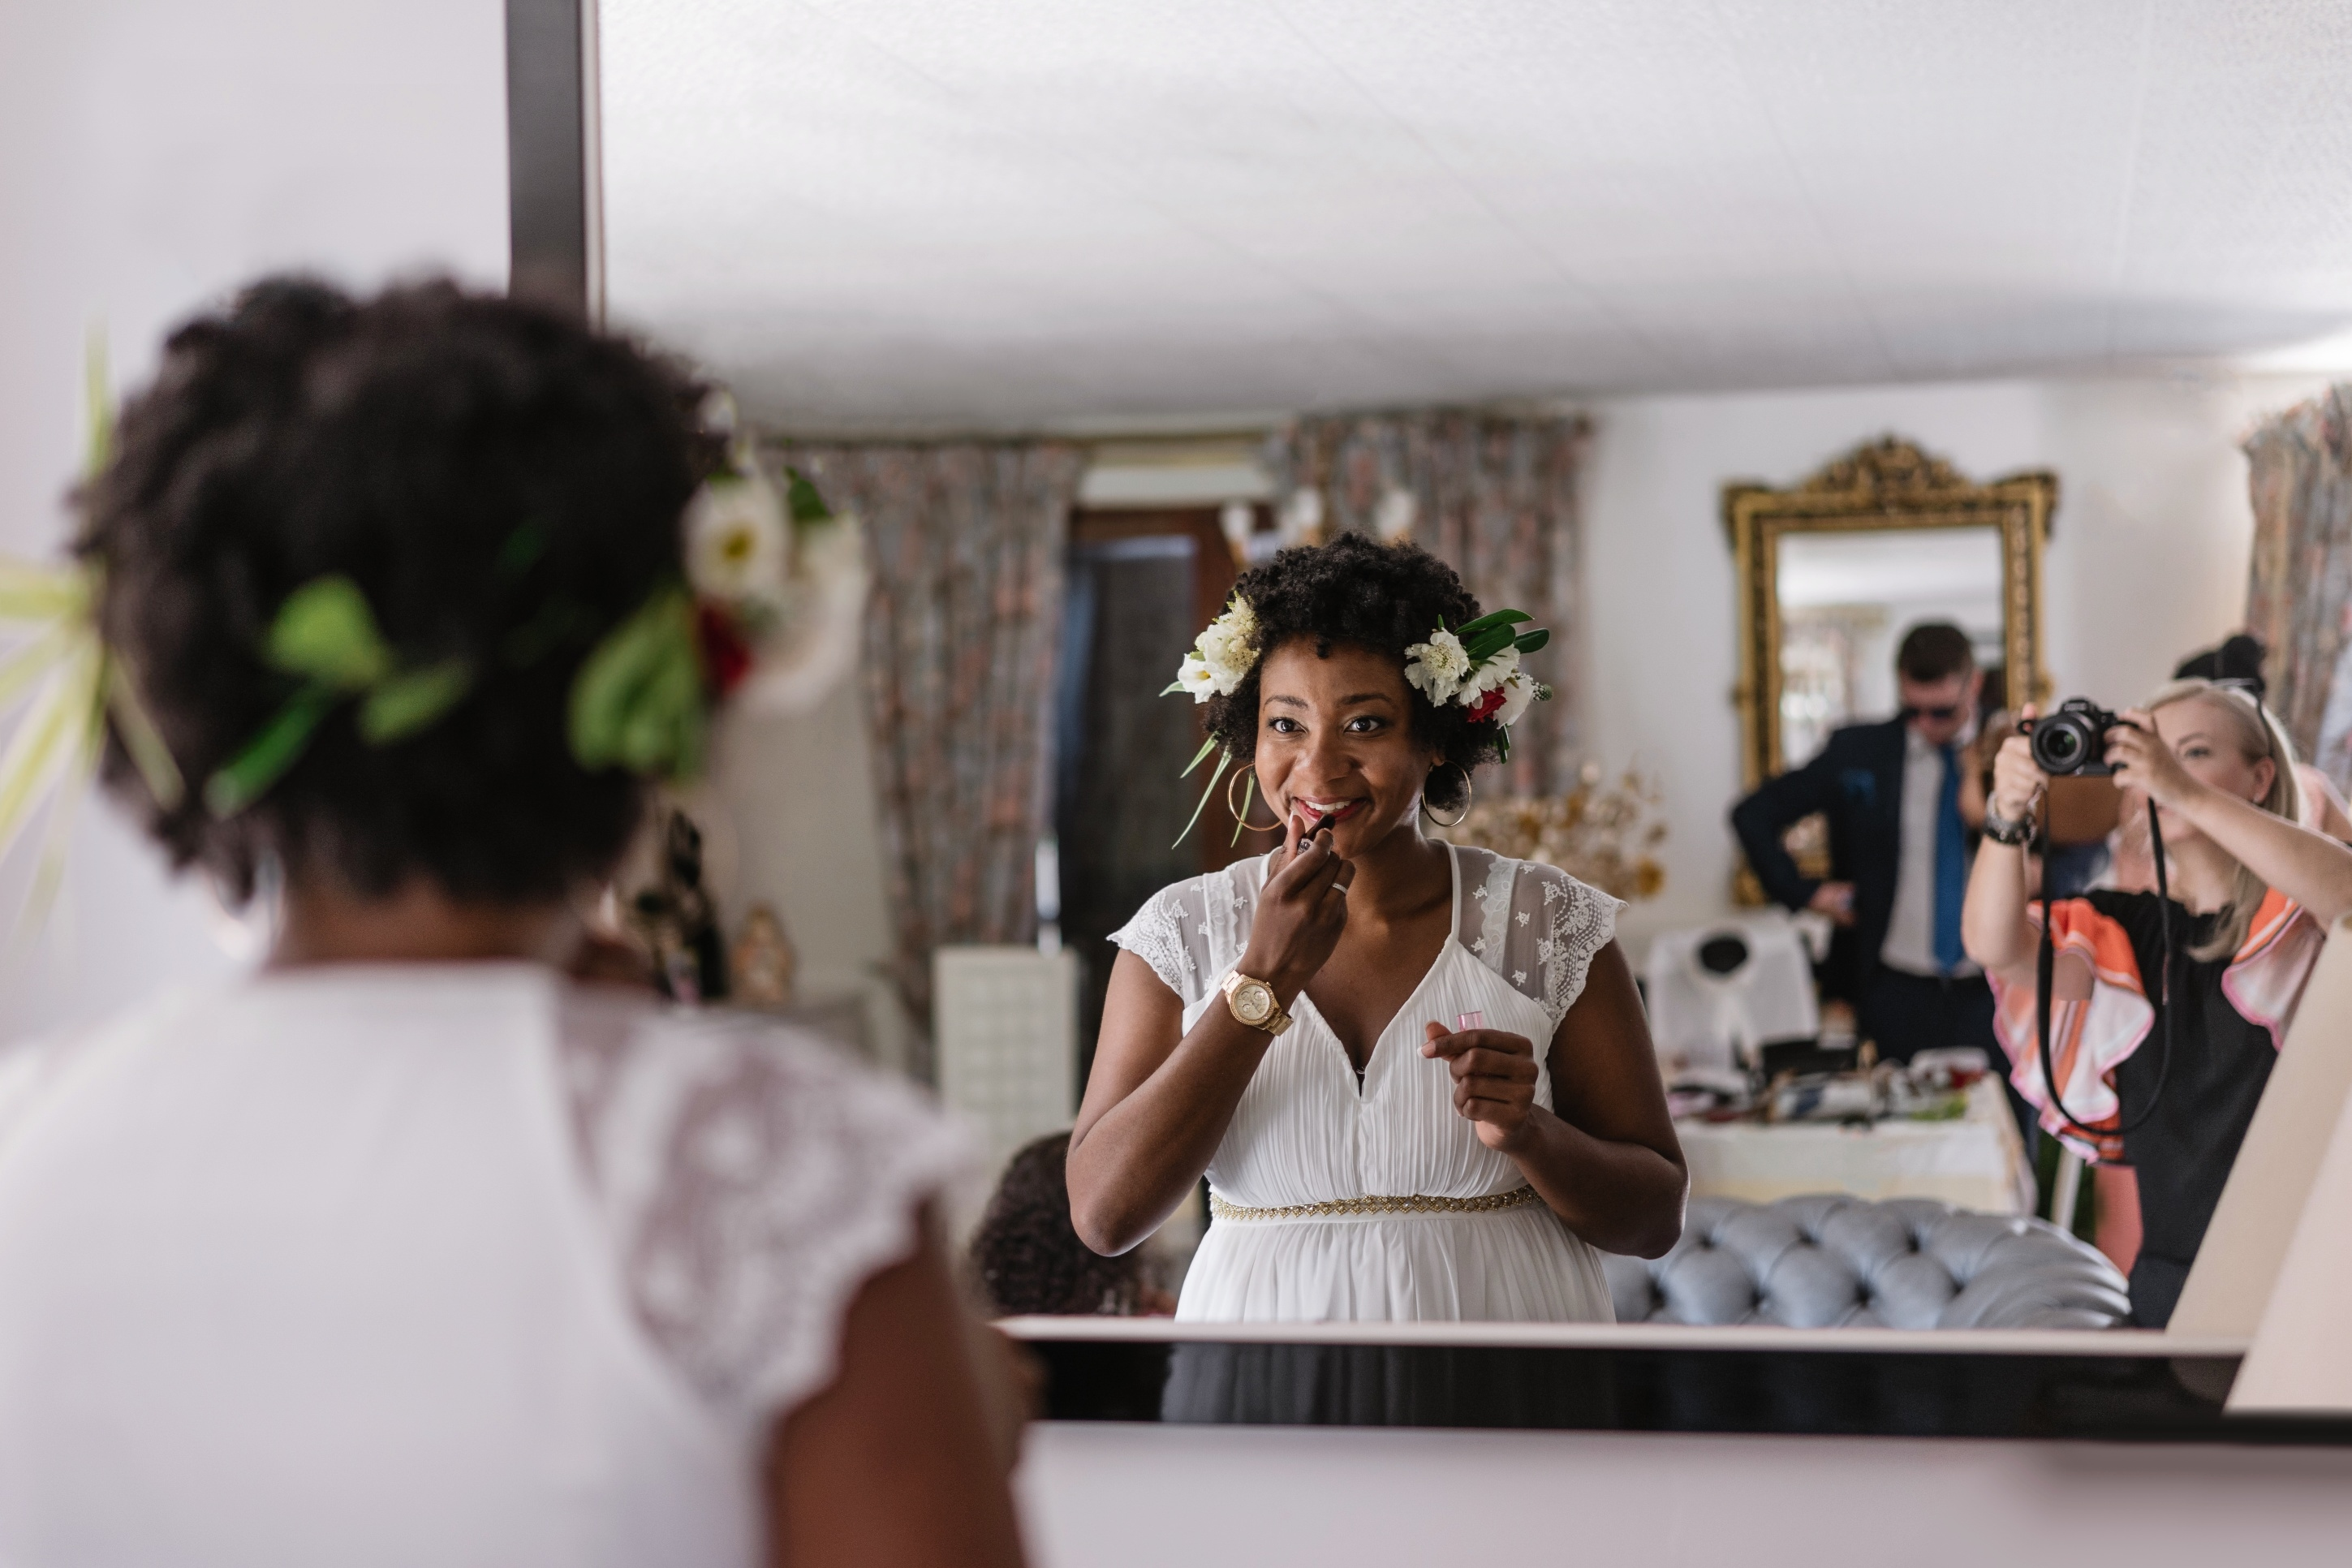 Reflection Of Bride Applying Lipstick While Standing In Front Of Mirror